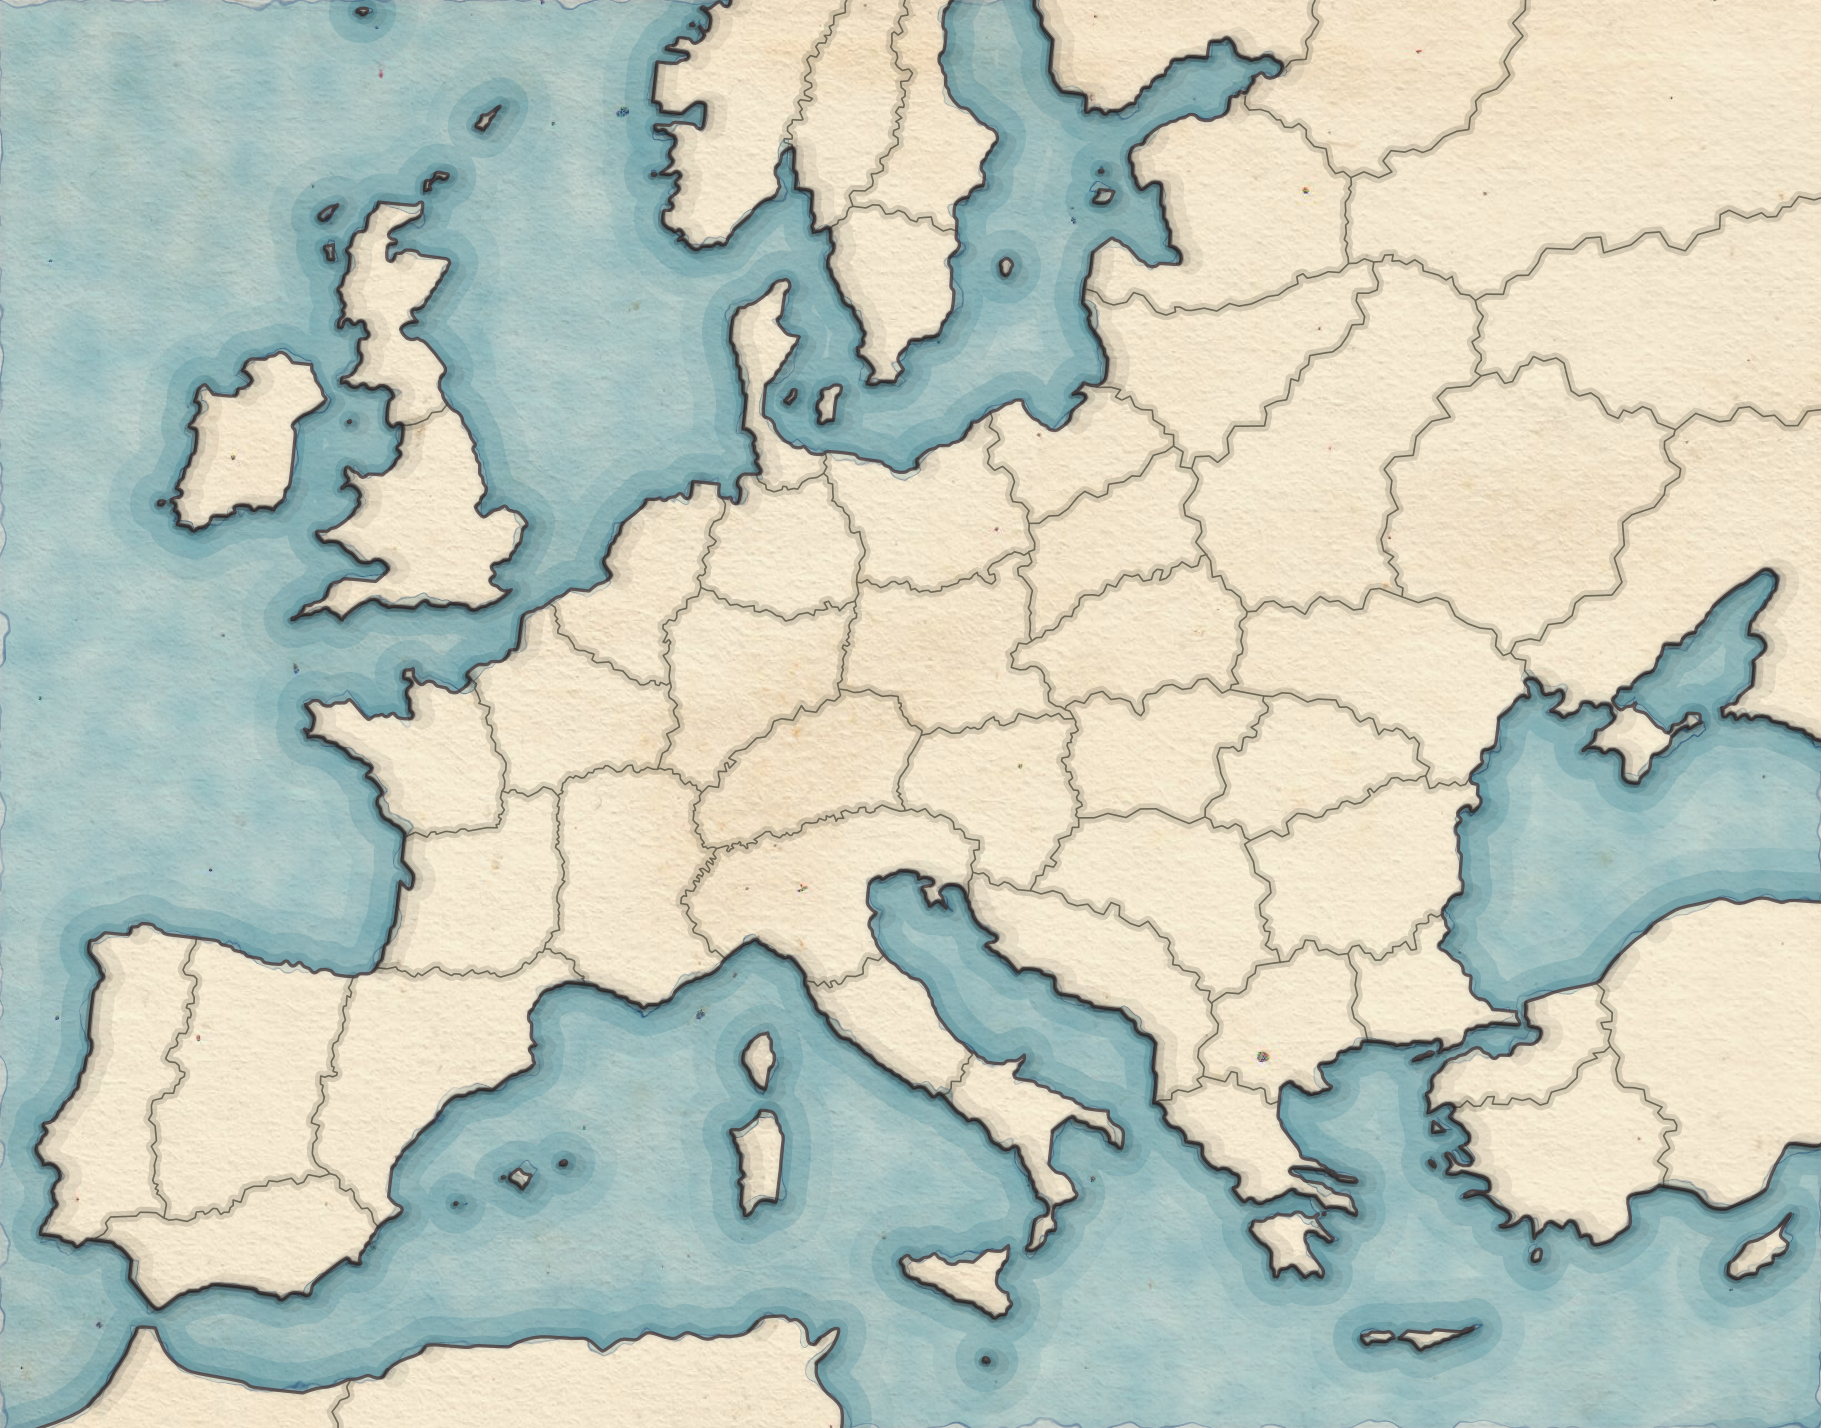 1. Began with a map of Europe, divided into regions. I wanted a water-colour texture for this map.